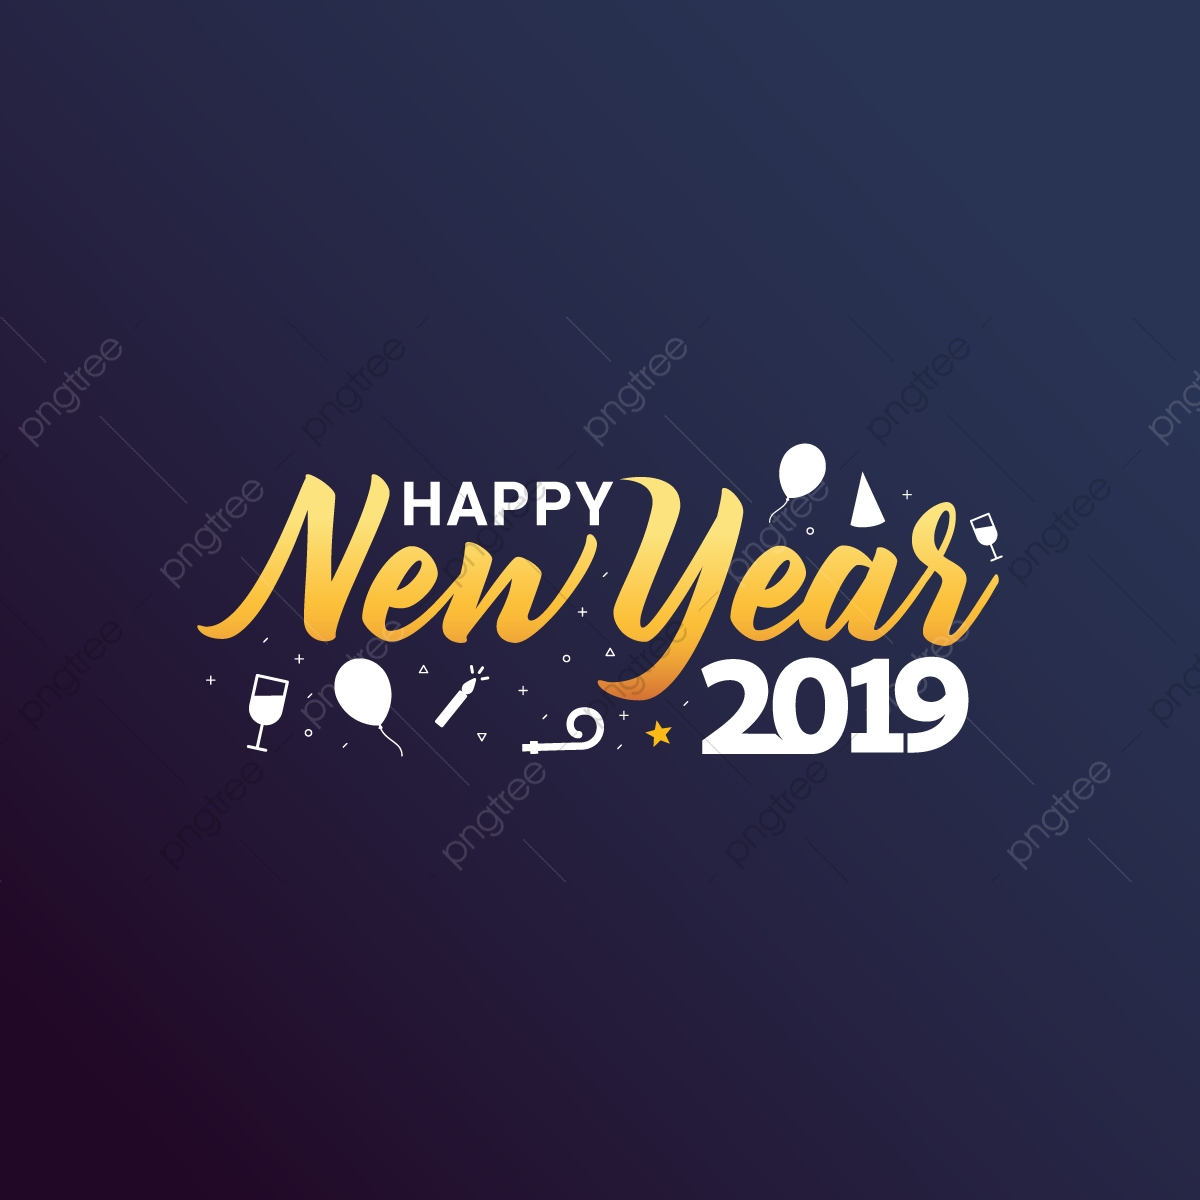 Happy New Year 2019 Png Images Vector And Psd Files Free Download On Pngtree Here you can explore hq happy new year transparent illustrations, icons and clipart with filter setting like size, type, color etc. https pngtree com freepng happy new year 2019 greeting card with trendy background illustration 3690843 html